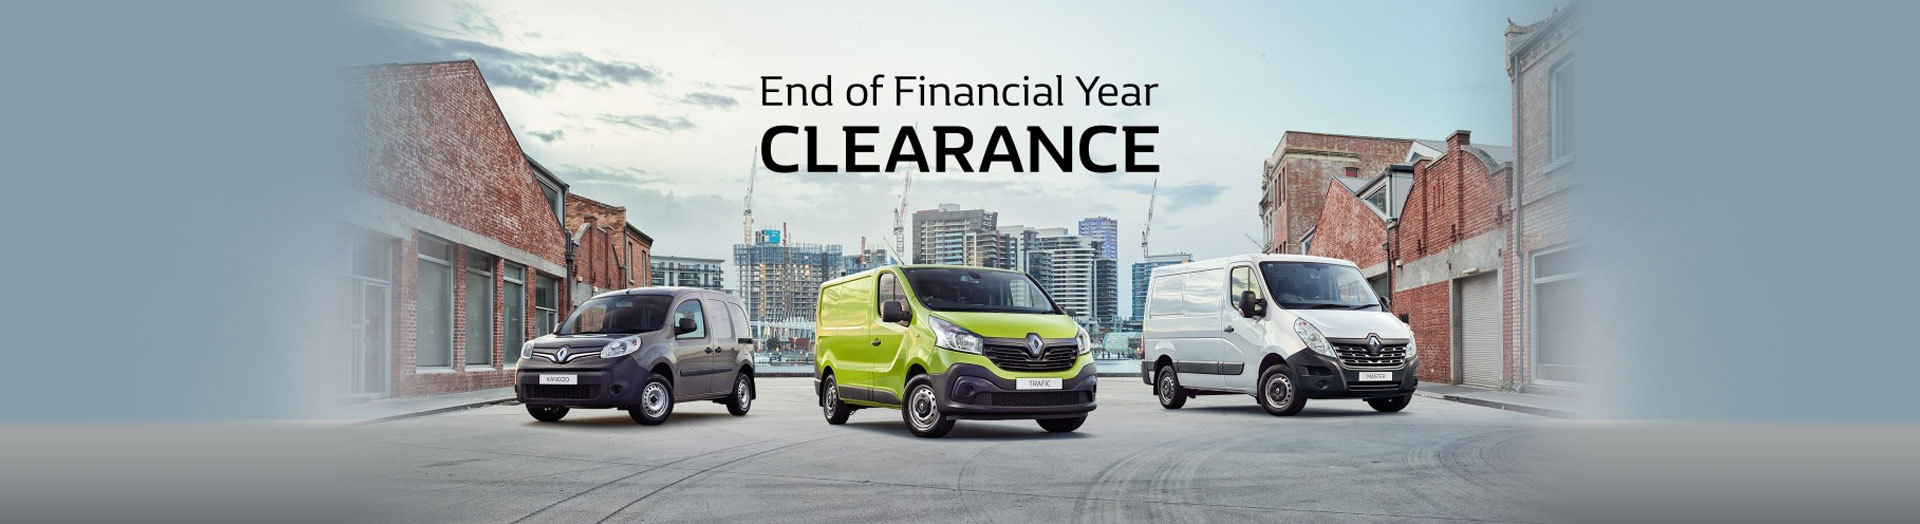 Renault - End of Financial Year Clearance